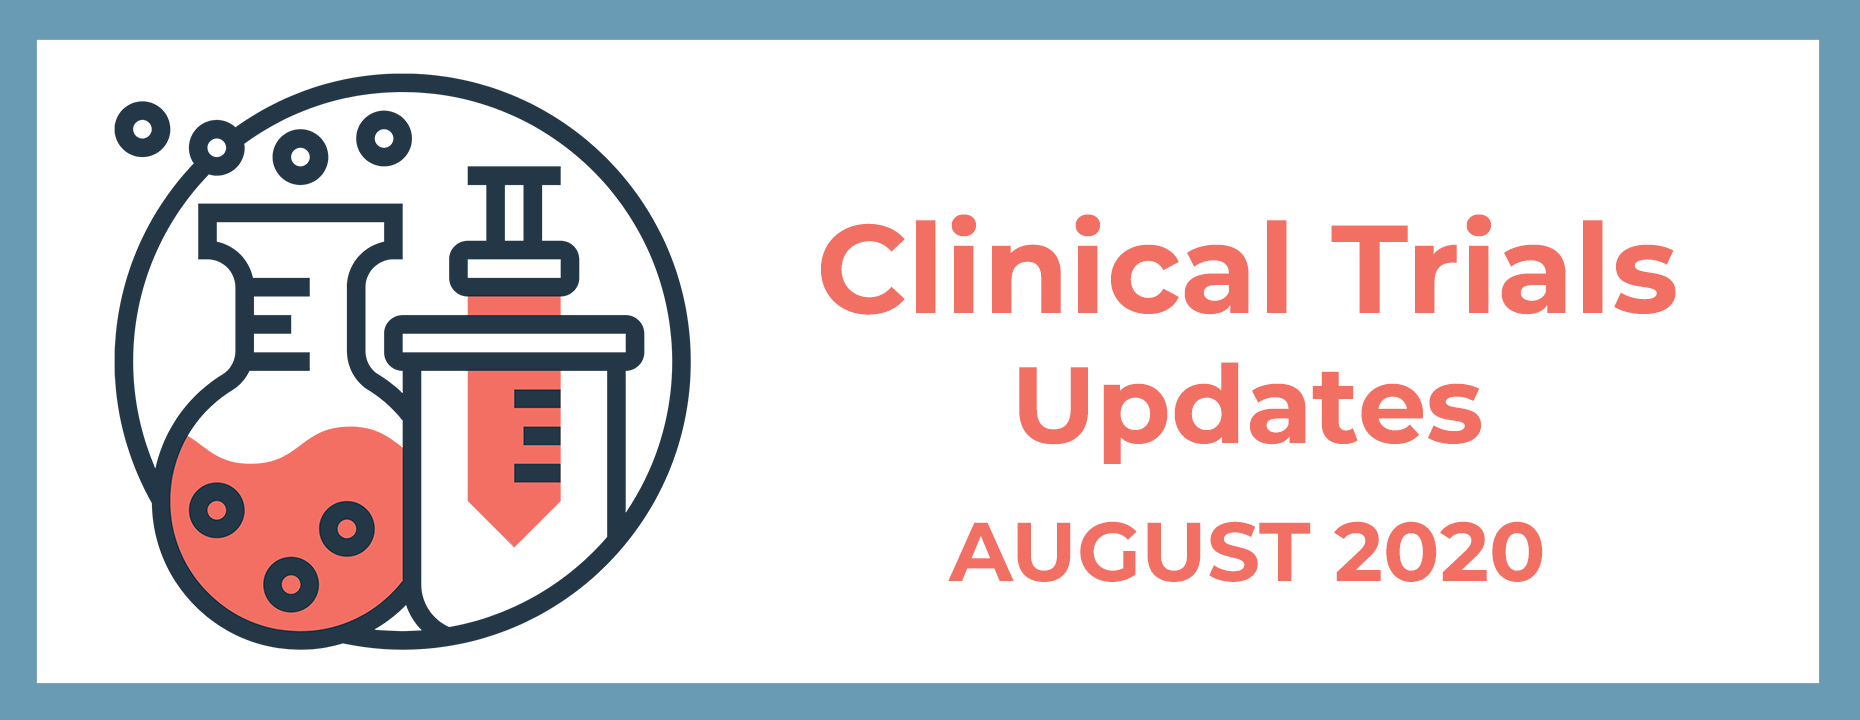 Clinical Trial Updates